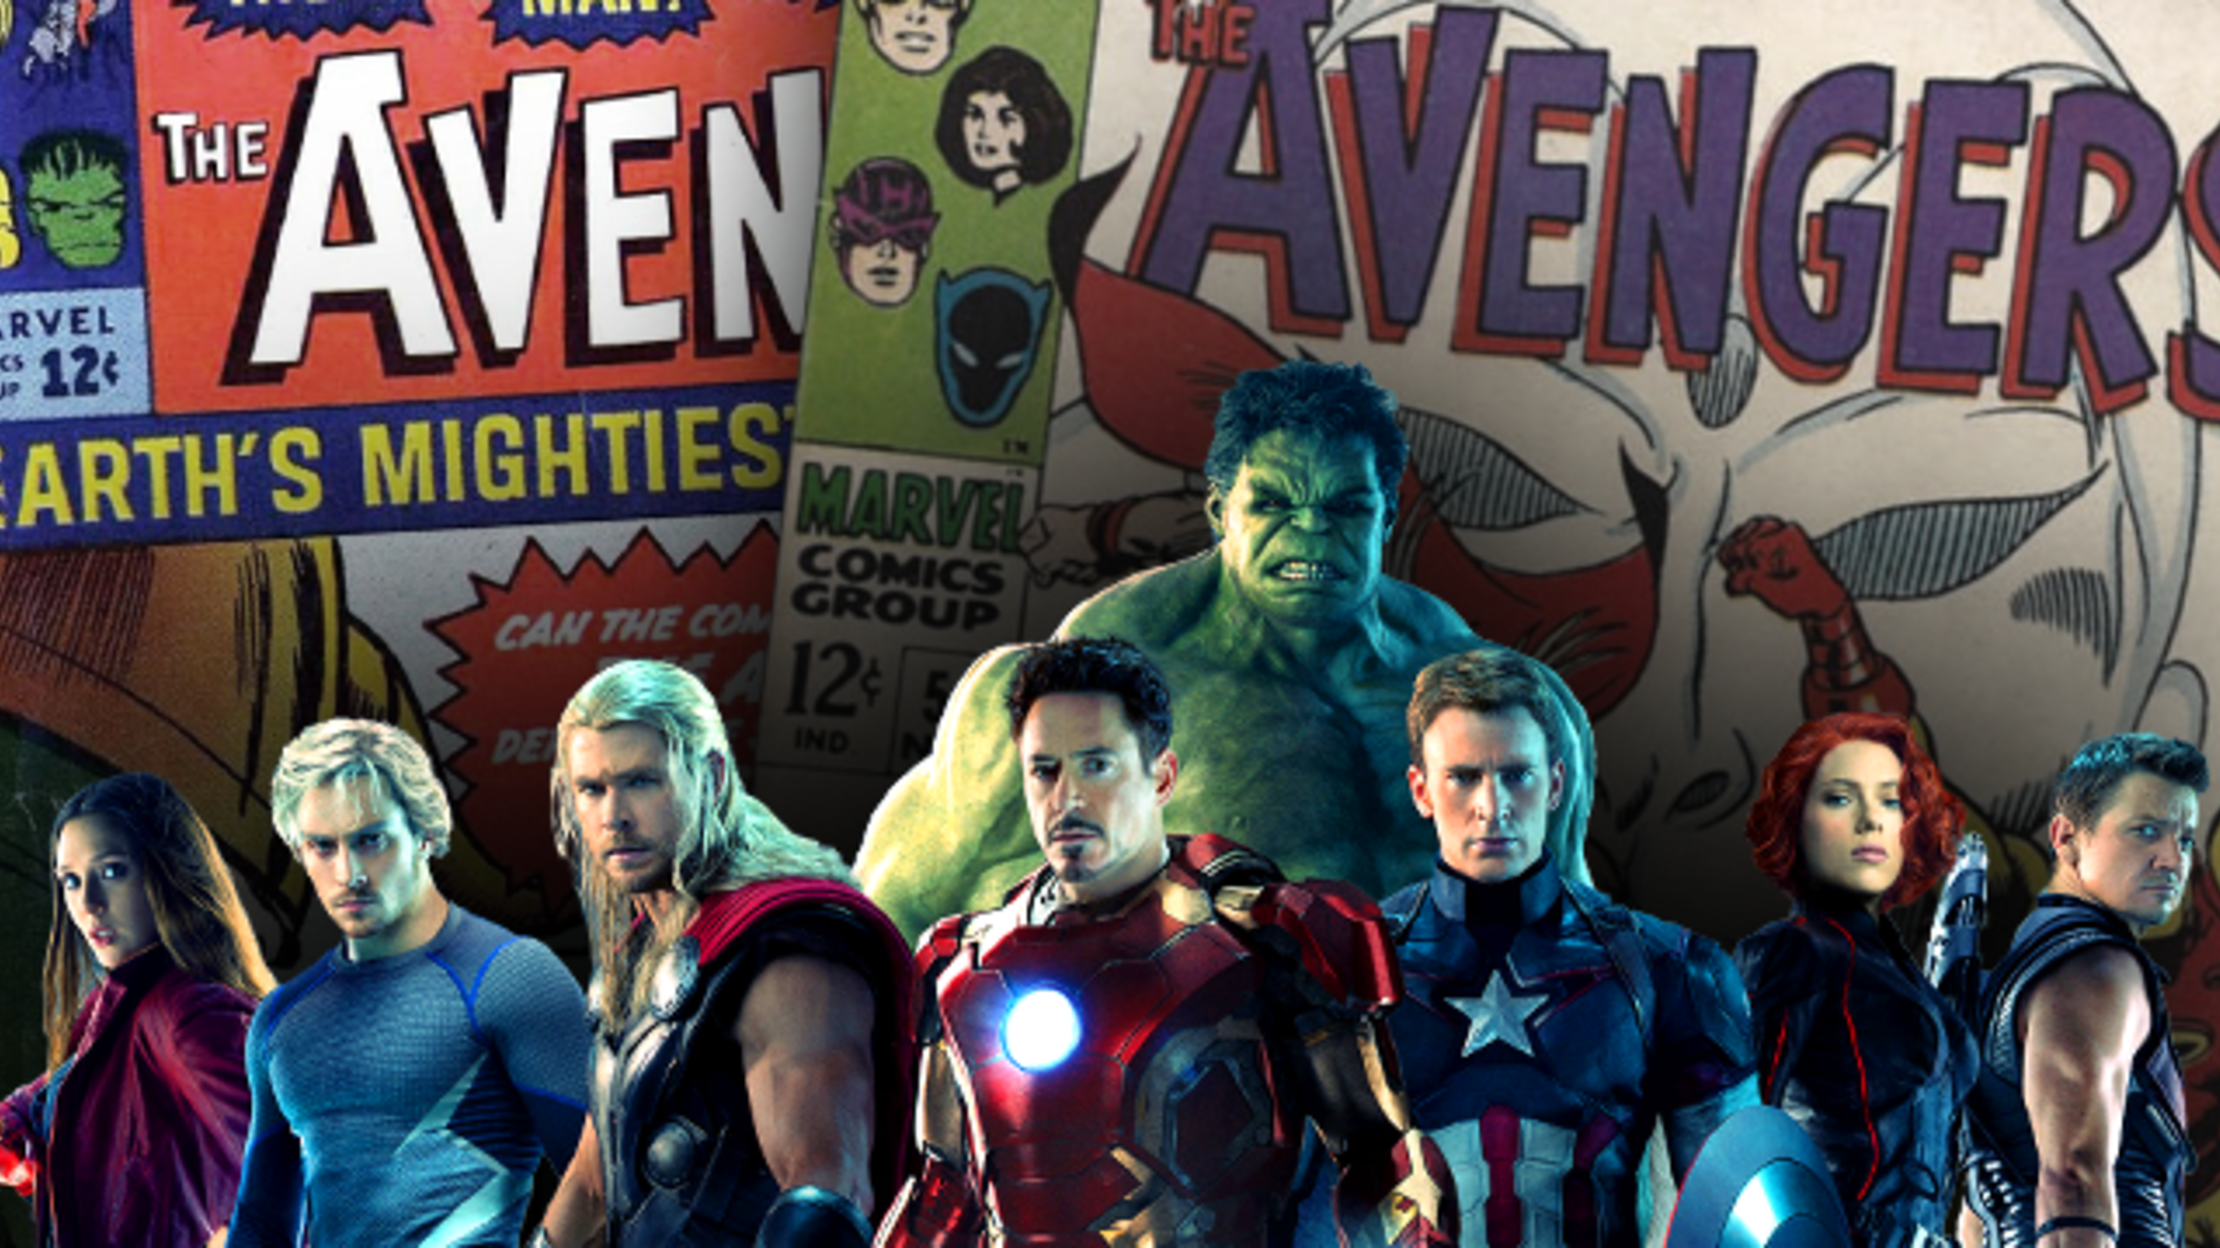 10 Things You Might Not Know About The Avengers Mental Floss border=